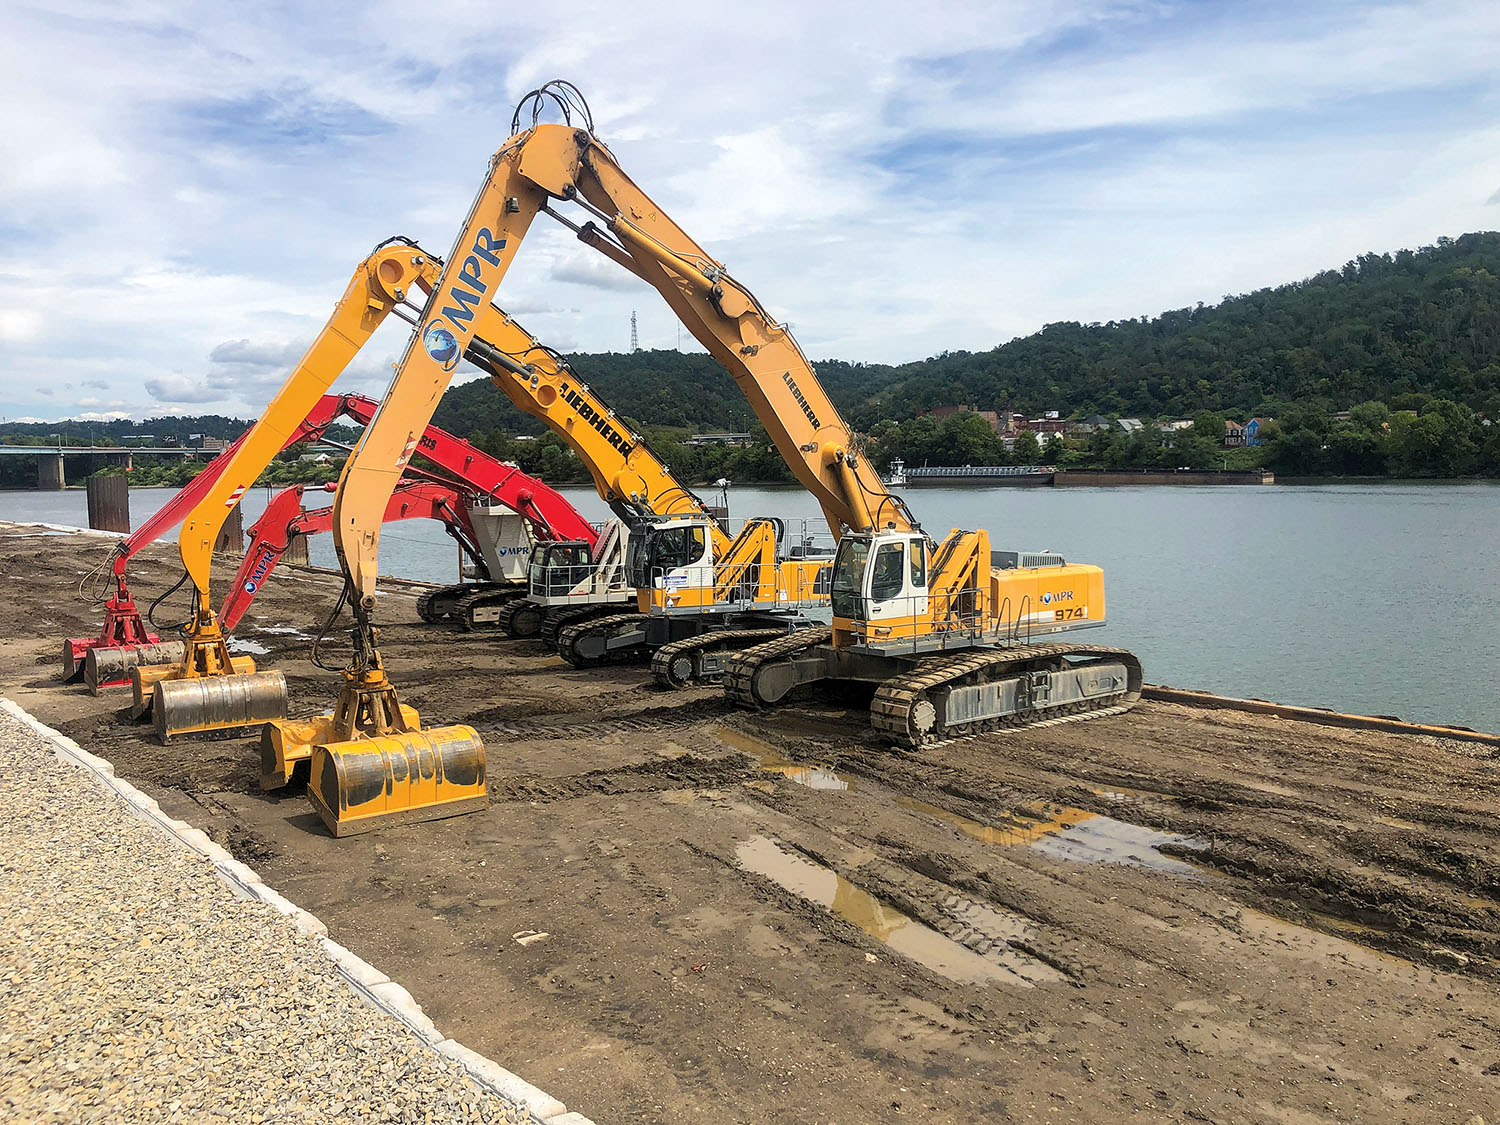 A 2019 equipment and harbor expansion at MPR Supply Chain Solutions included extending the dock to 850 feet for additional unloading capacity. (Photo courtesy of MPR Supply Chain Solutions)